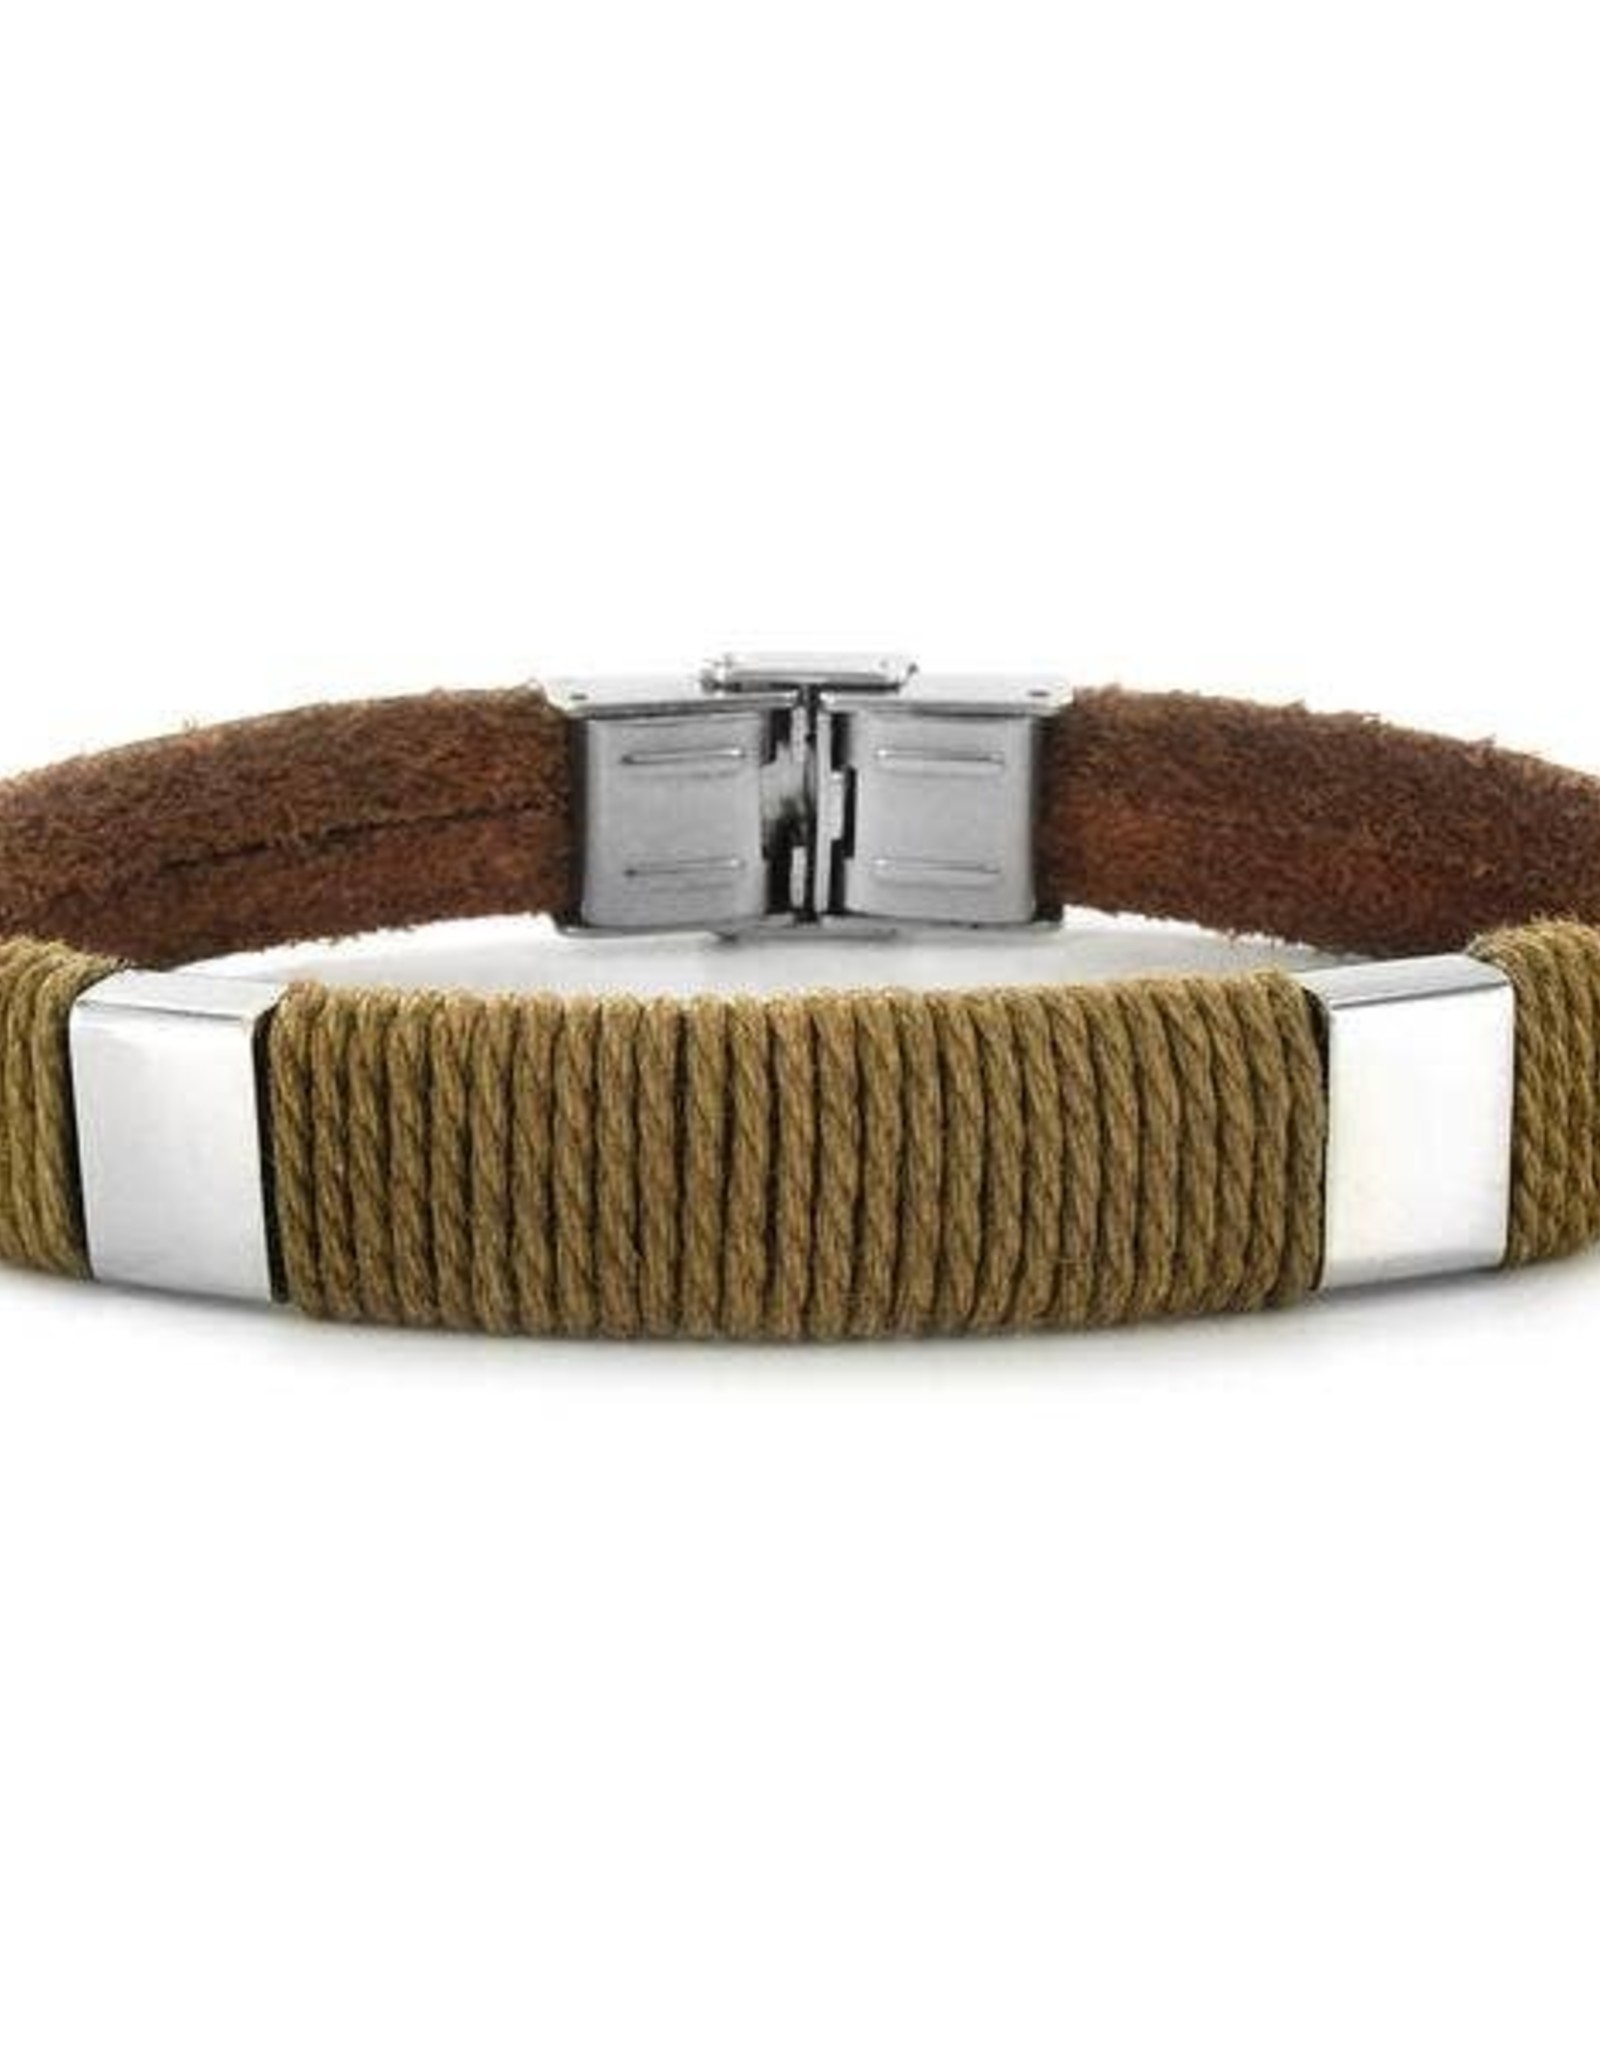 BRACELET-CRUCIBLE ACCENT TWISTED ROPE LEATHER BLK/BRN